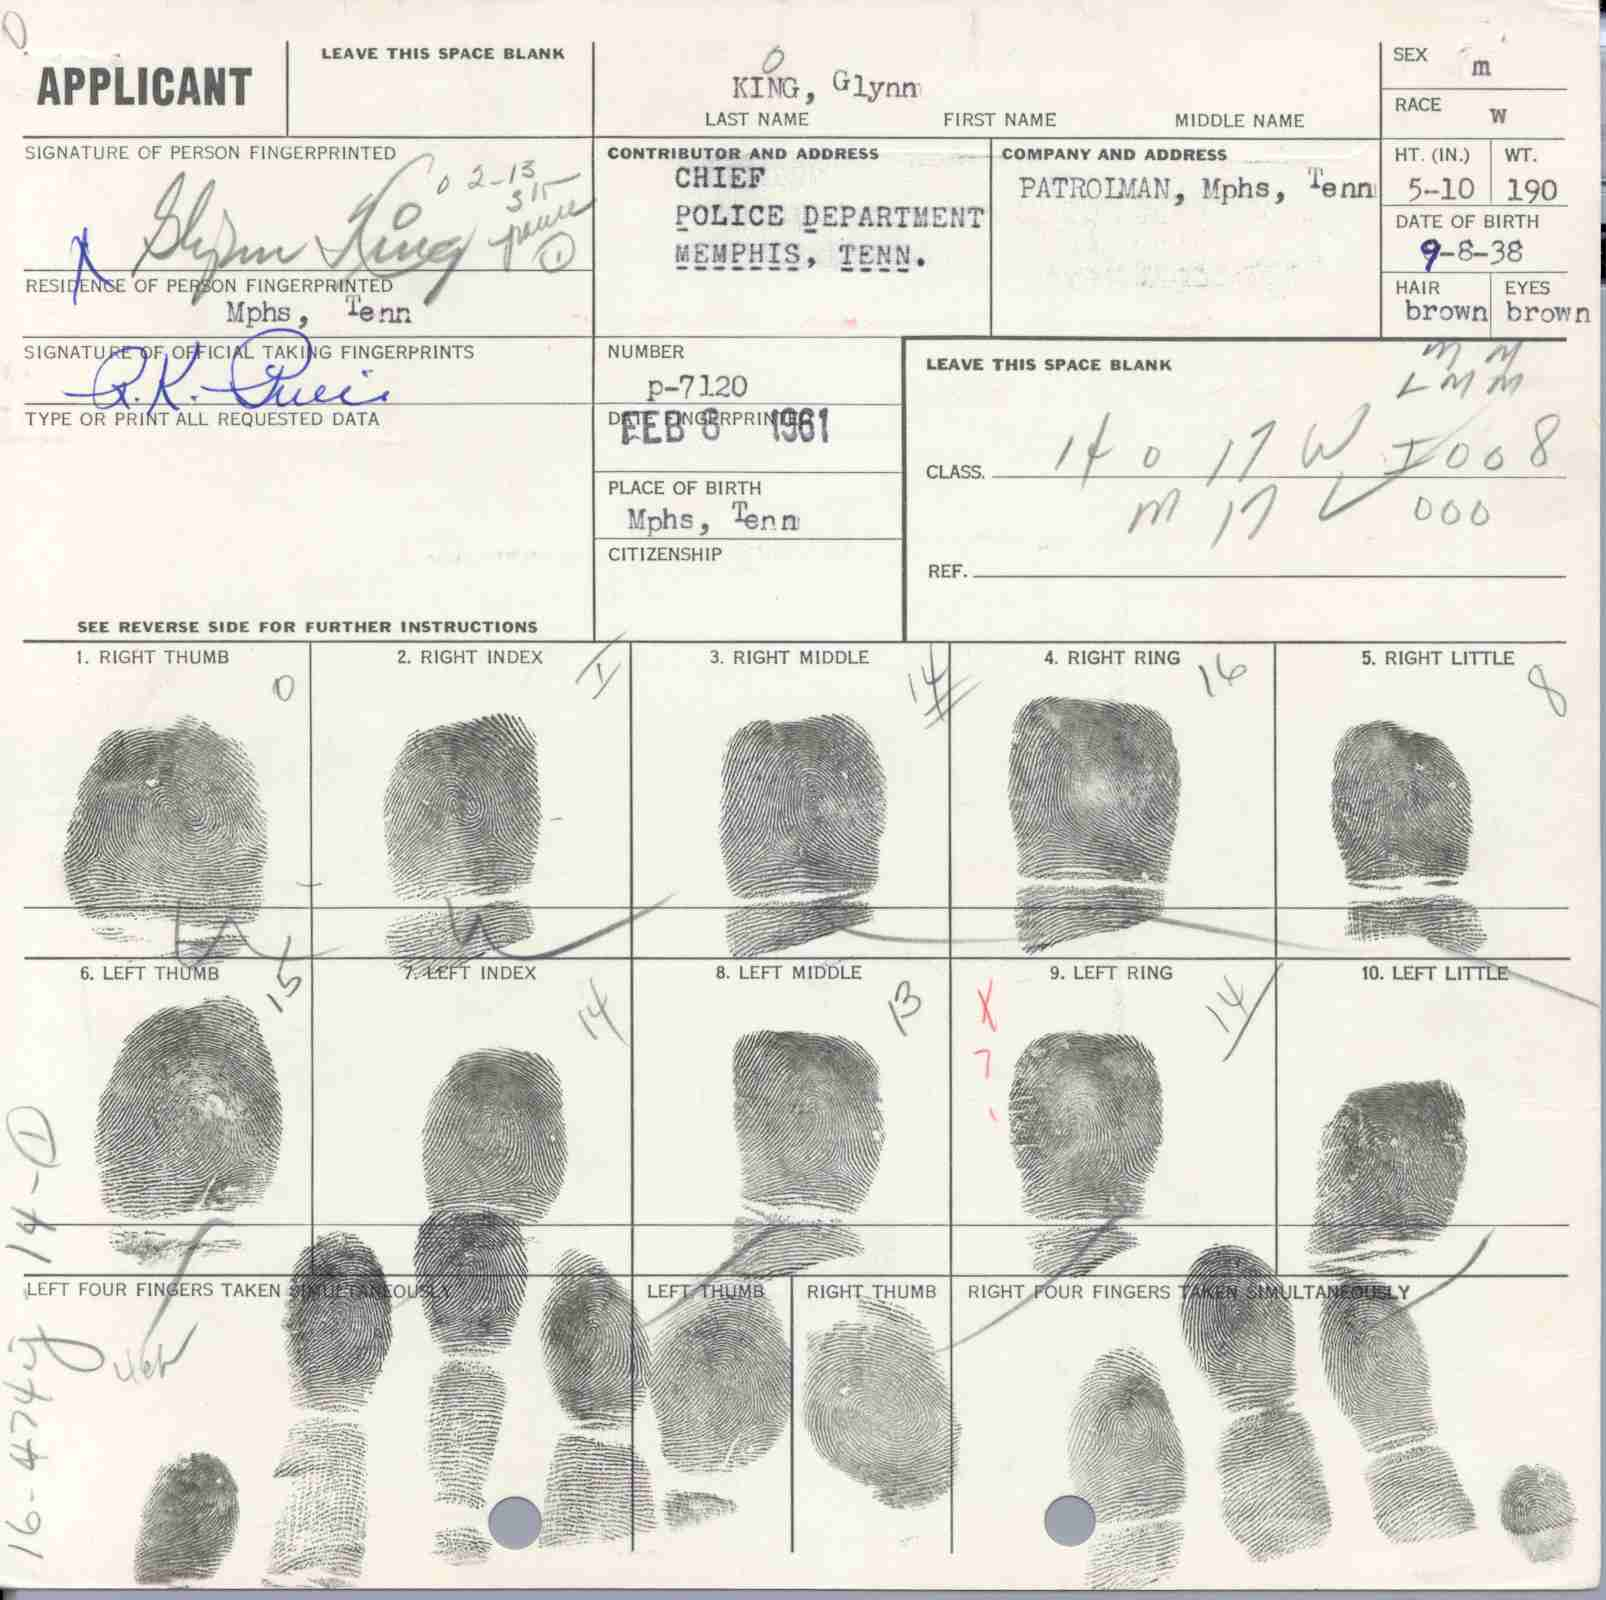 glynn king fingerprint card.jpg